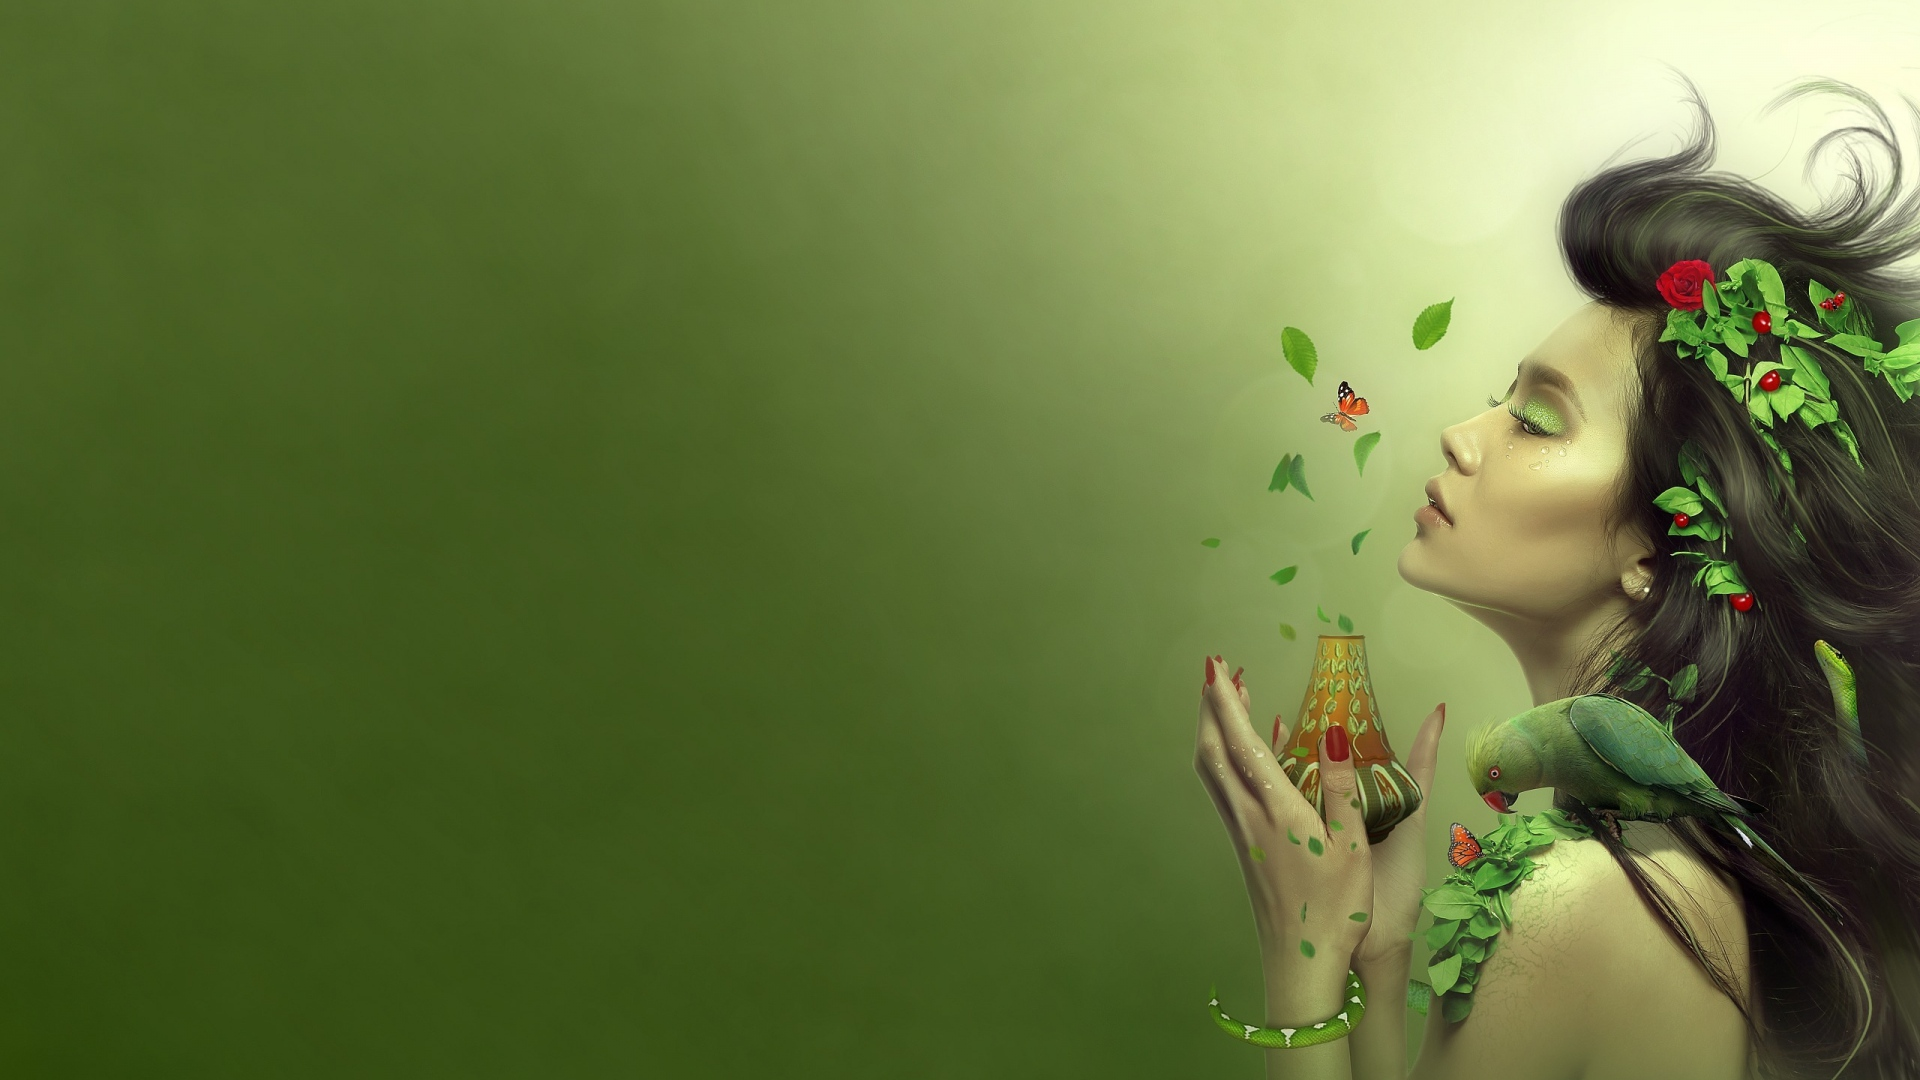 girl-leaves-aroma-butterfly-profile-1920x1080